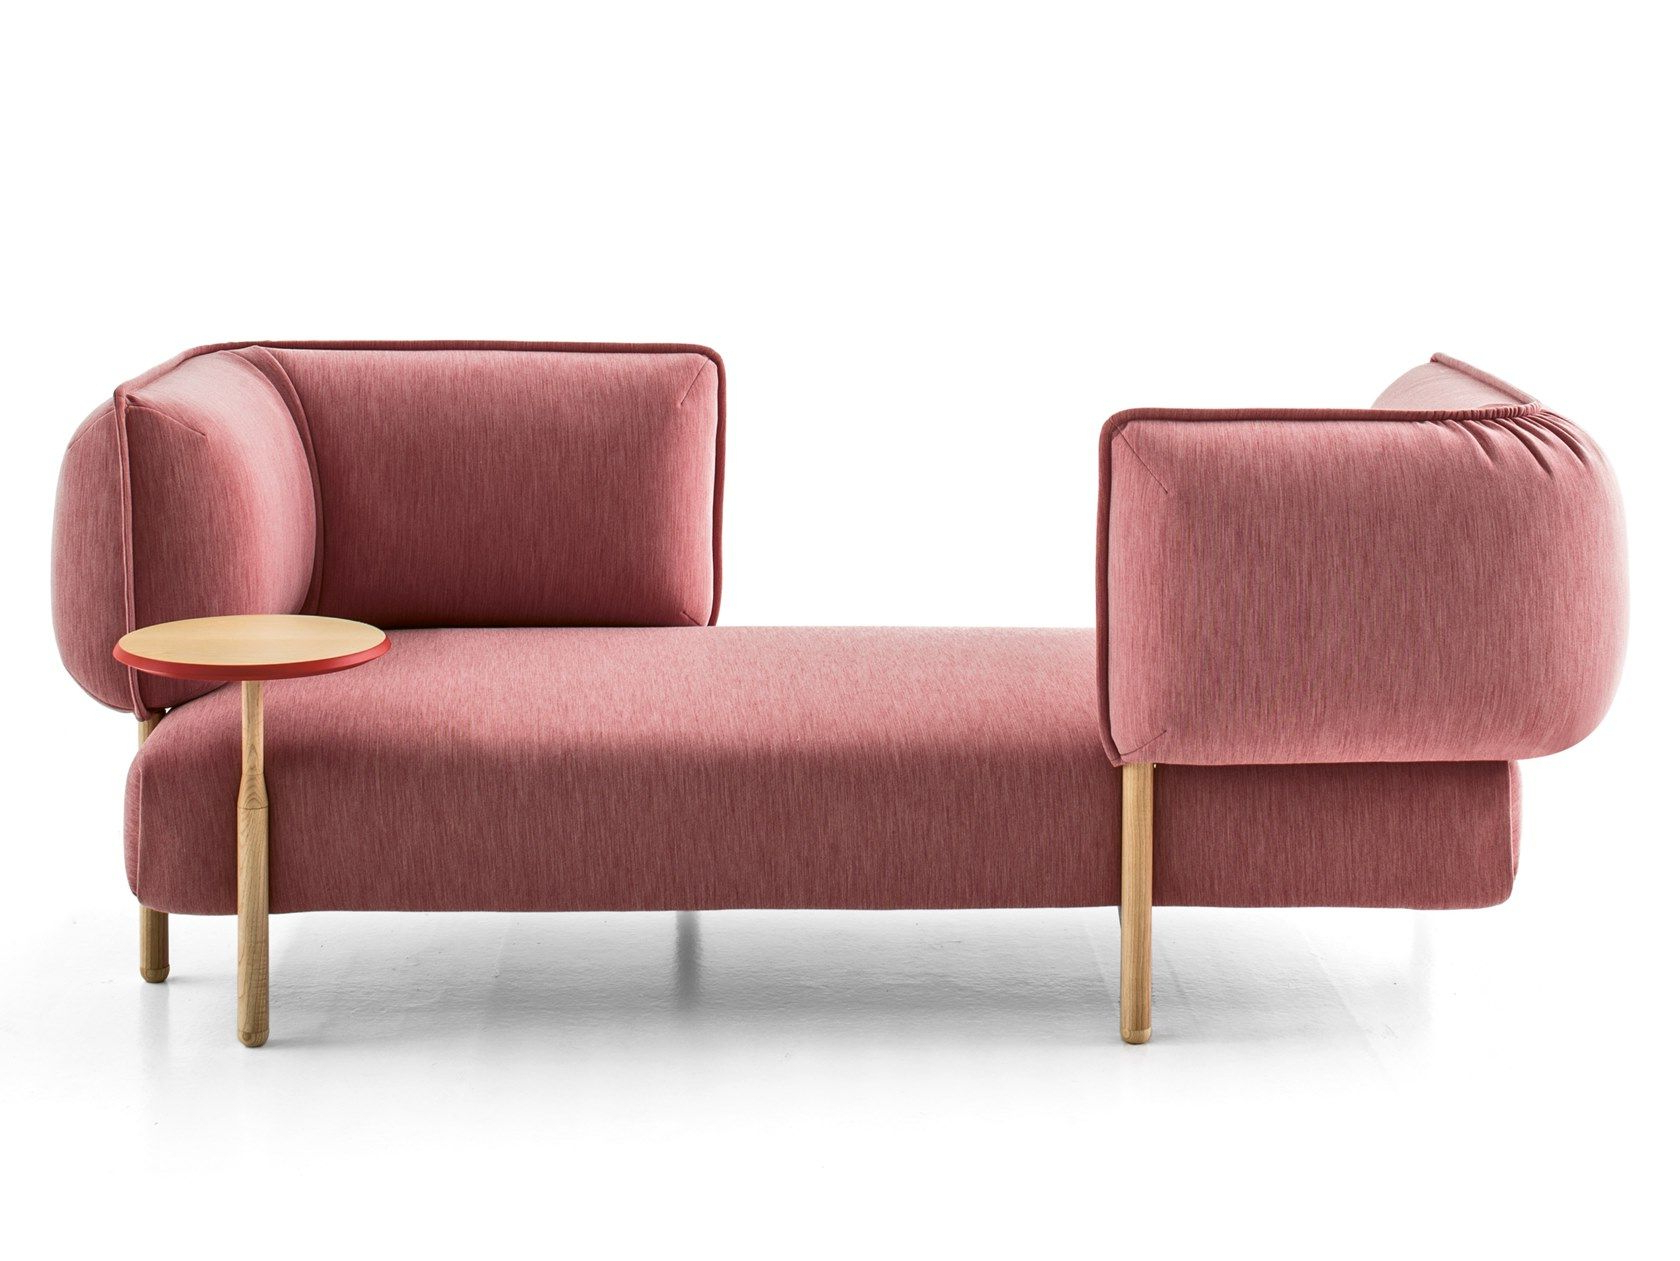 2019 Cohutta Armchairs Within 2 Seater Fabric Sofa Tender Vis A Vismoroso Design (View 13 of 20)